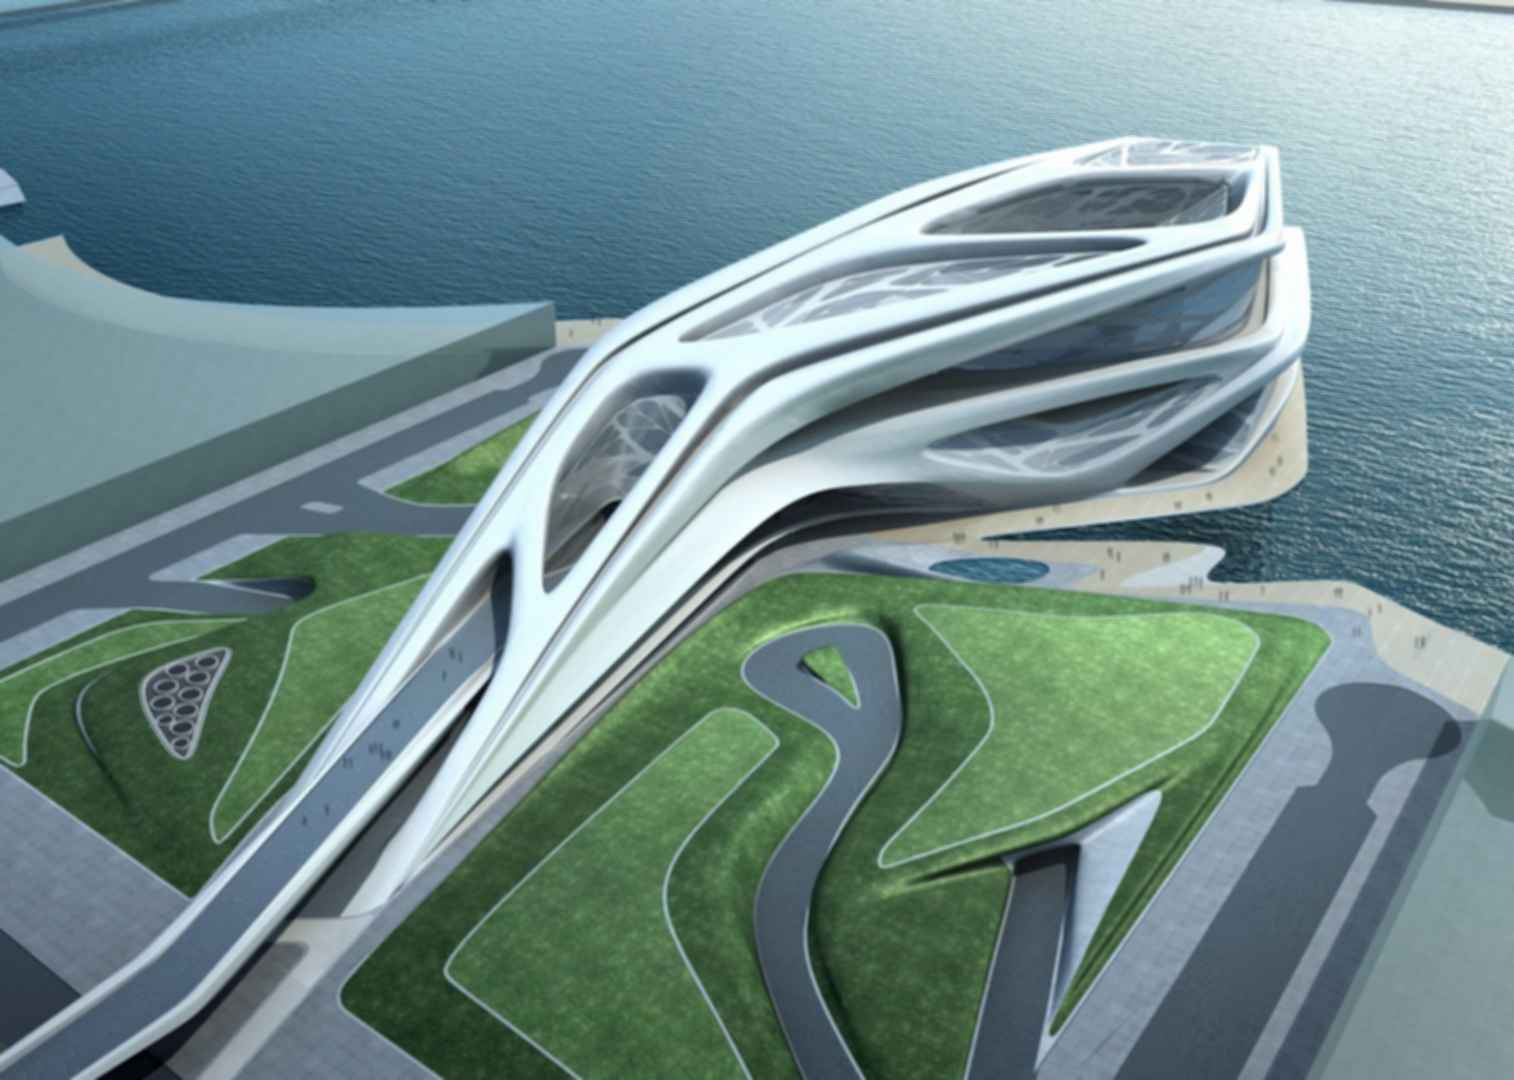 Abu Dhabi Performing Arts Centre - Overhead View Concept